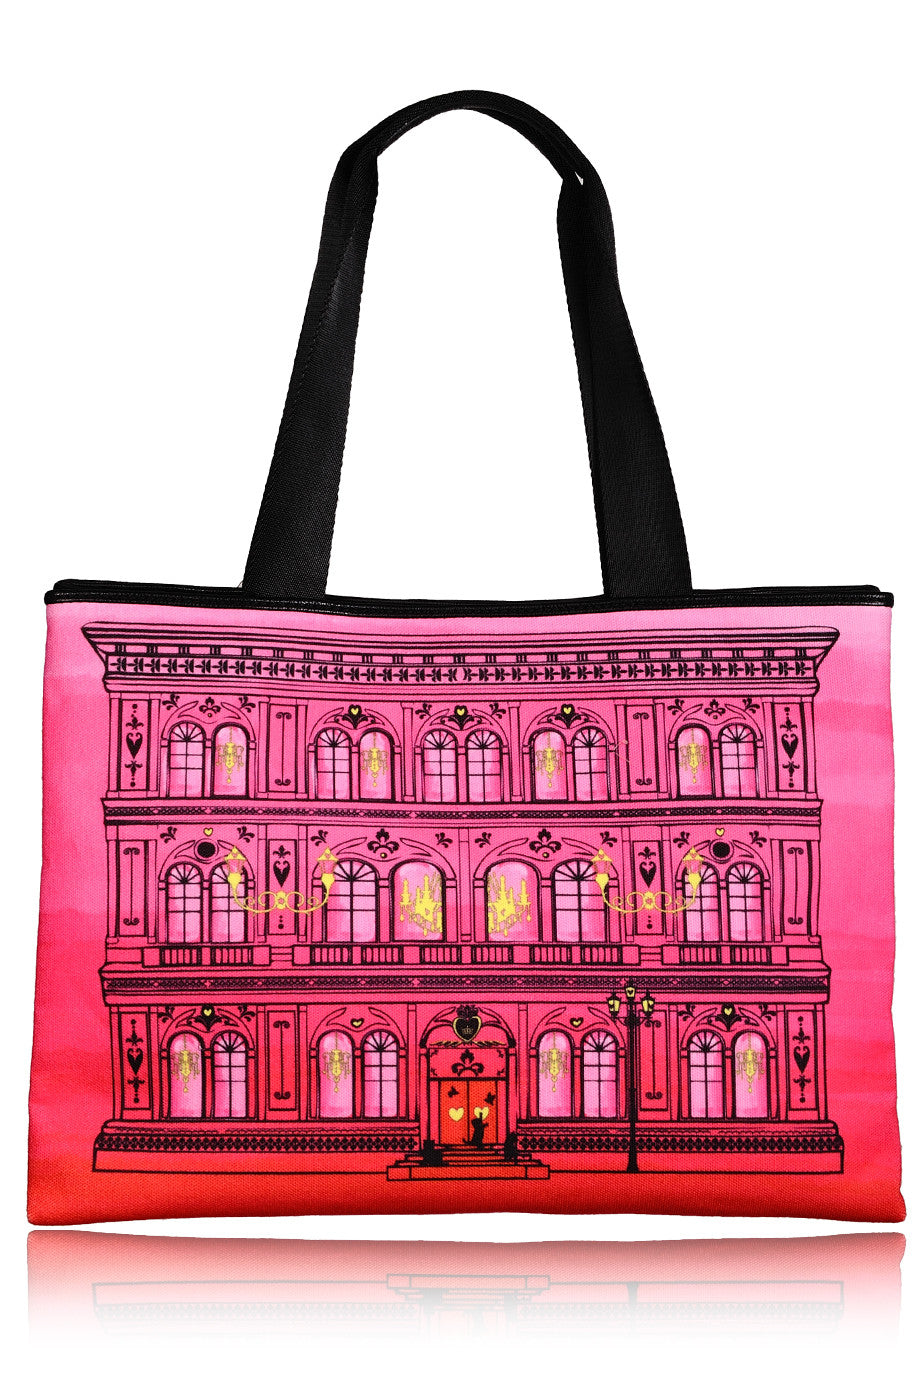 LOVE MOSCHINO PALAZZO Fuchsia Red Canvas Bag – PRET-A-BEAUTE.COM b0612db16e623